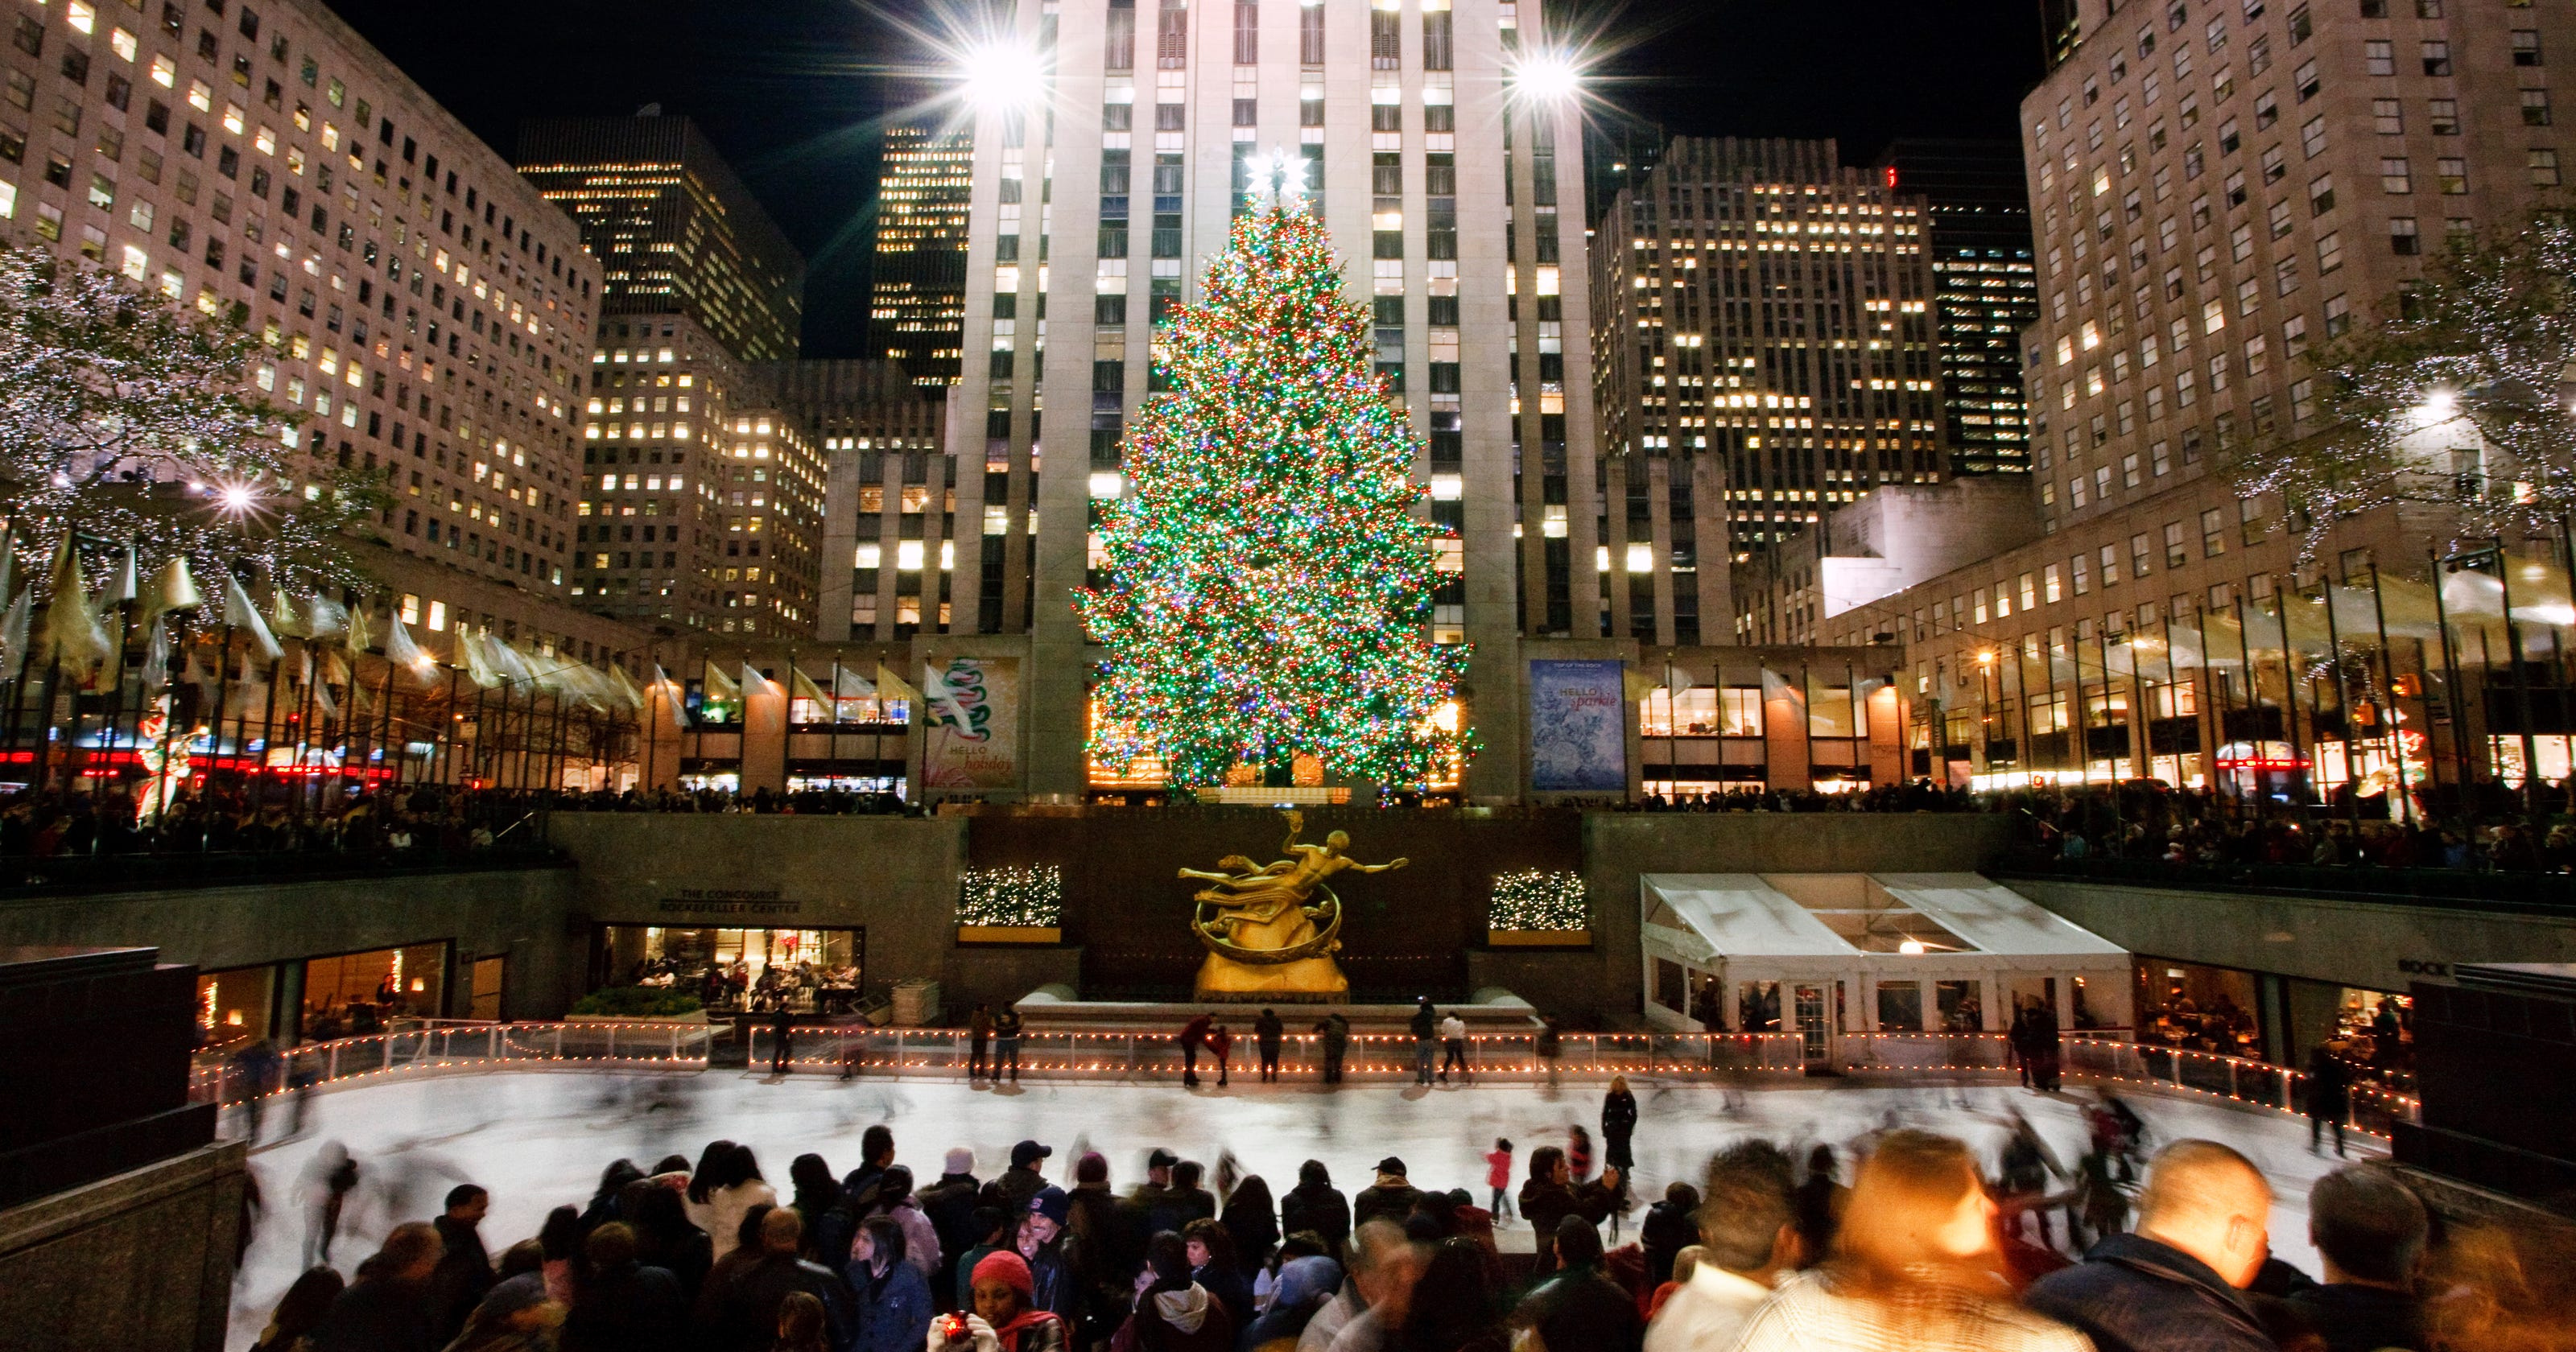 10best places to see holiday lights in nyc - Best Christmas Decorations In Nyc